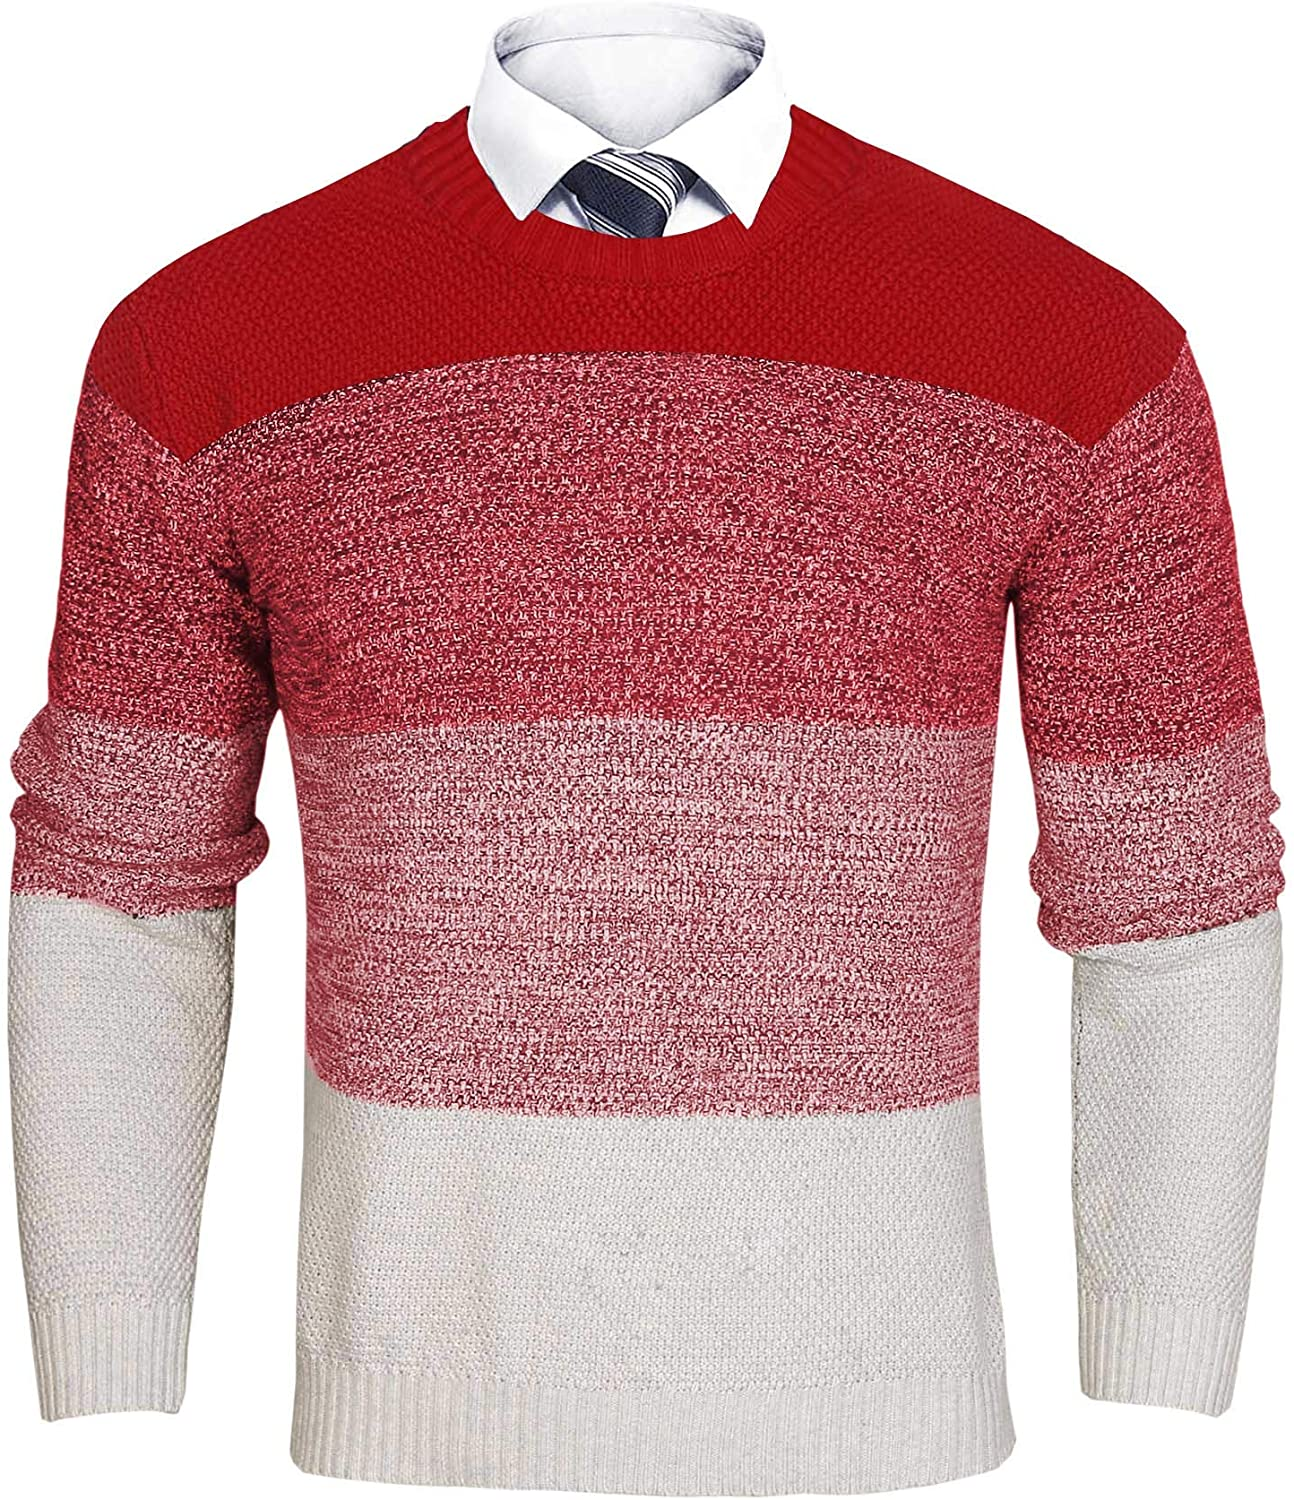 iClosam Men's Casual Long Sleeve Patchwork Pullover Sweater Assorted Color Knitwear